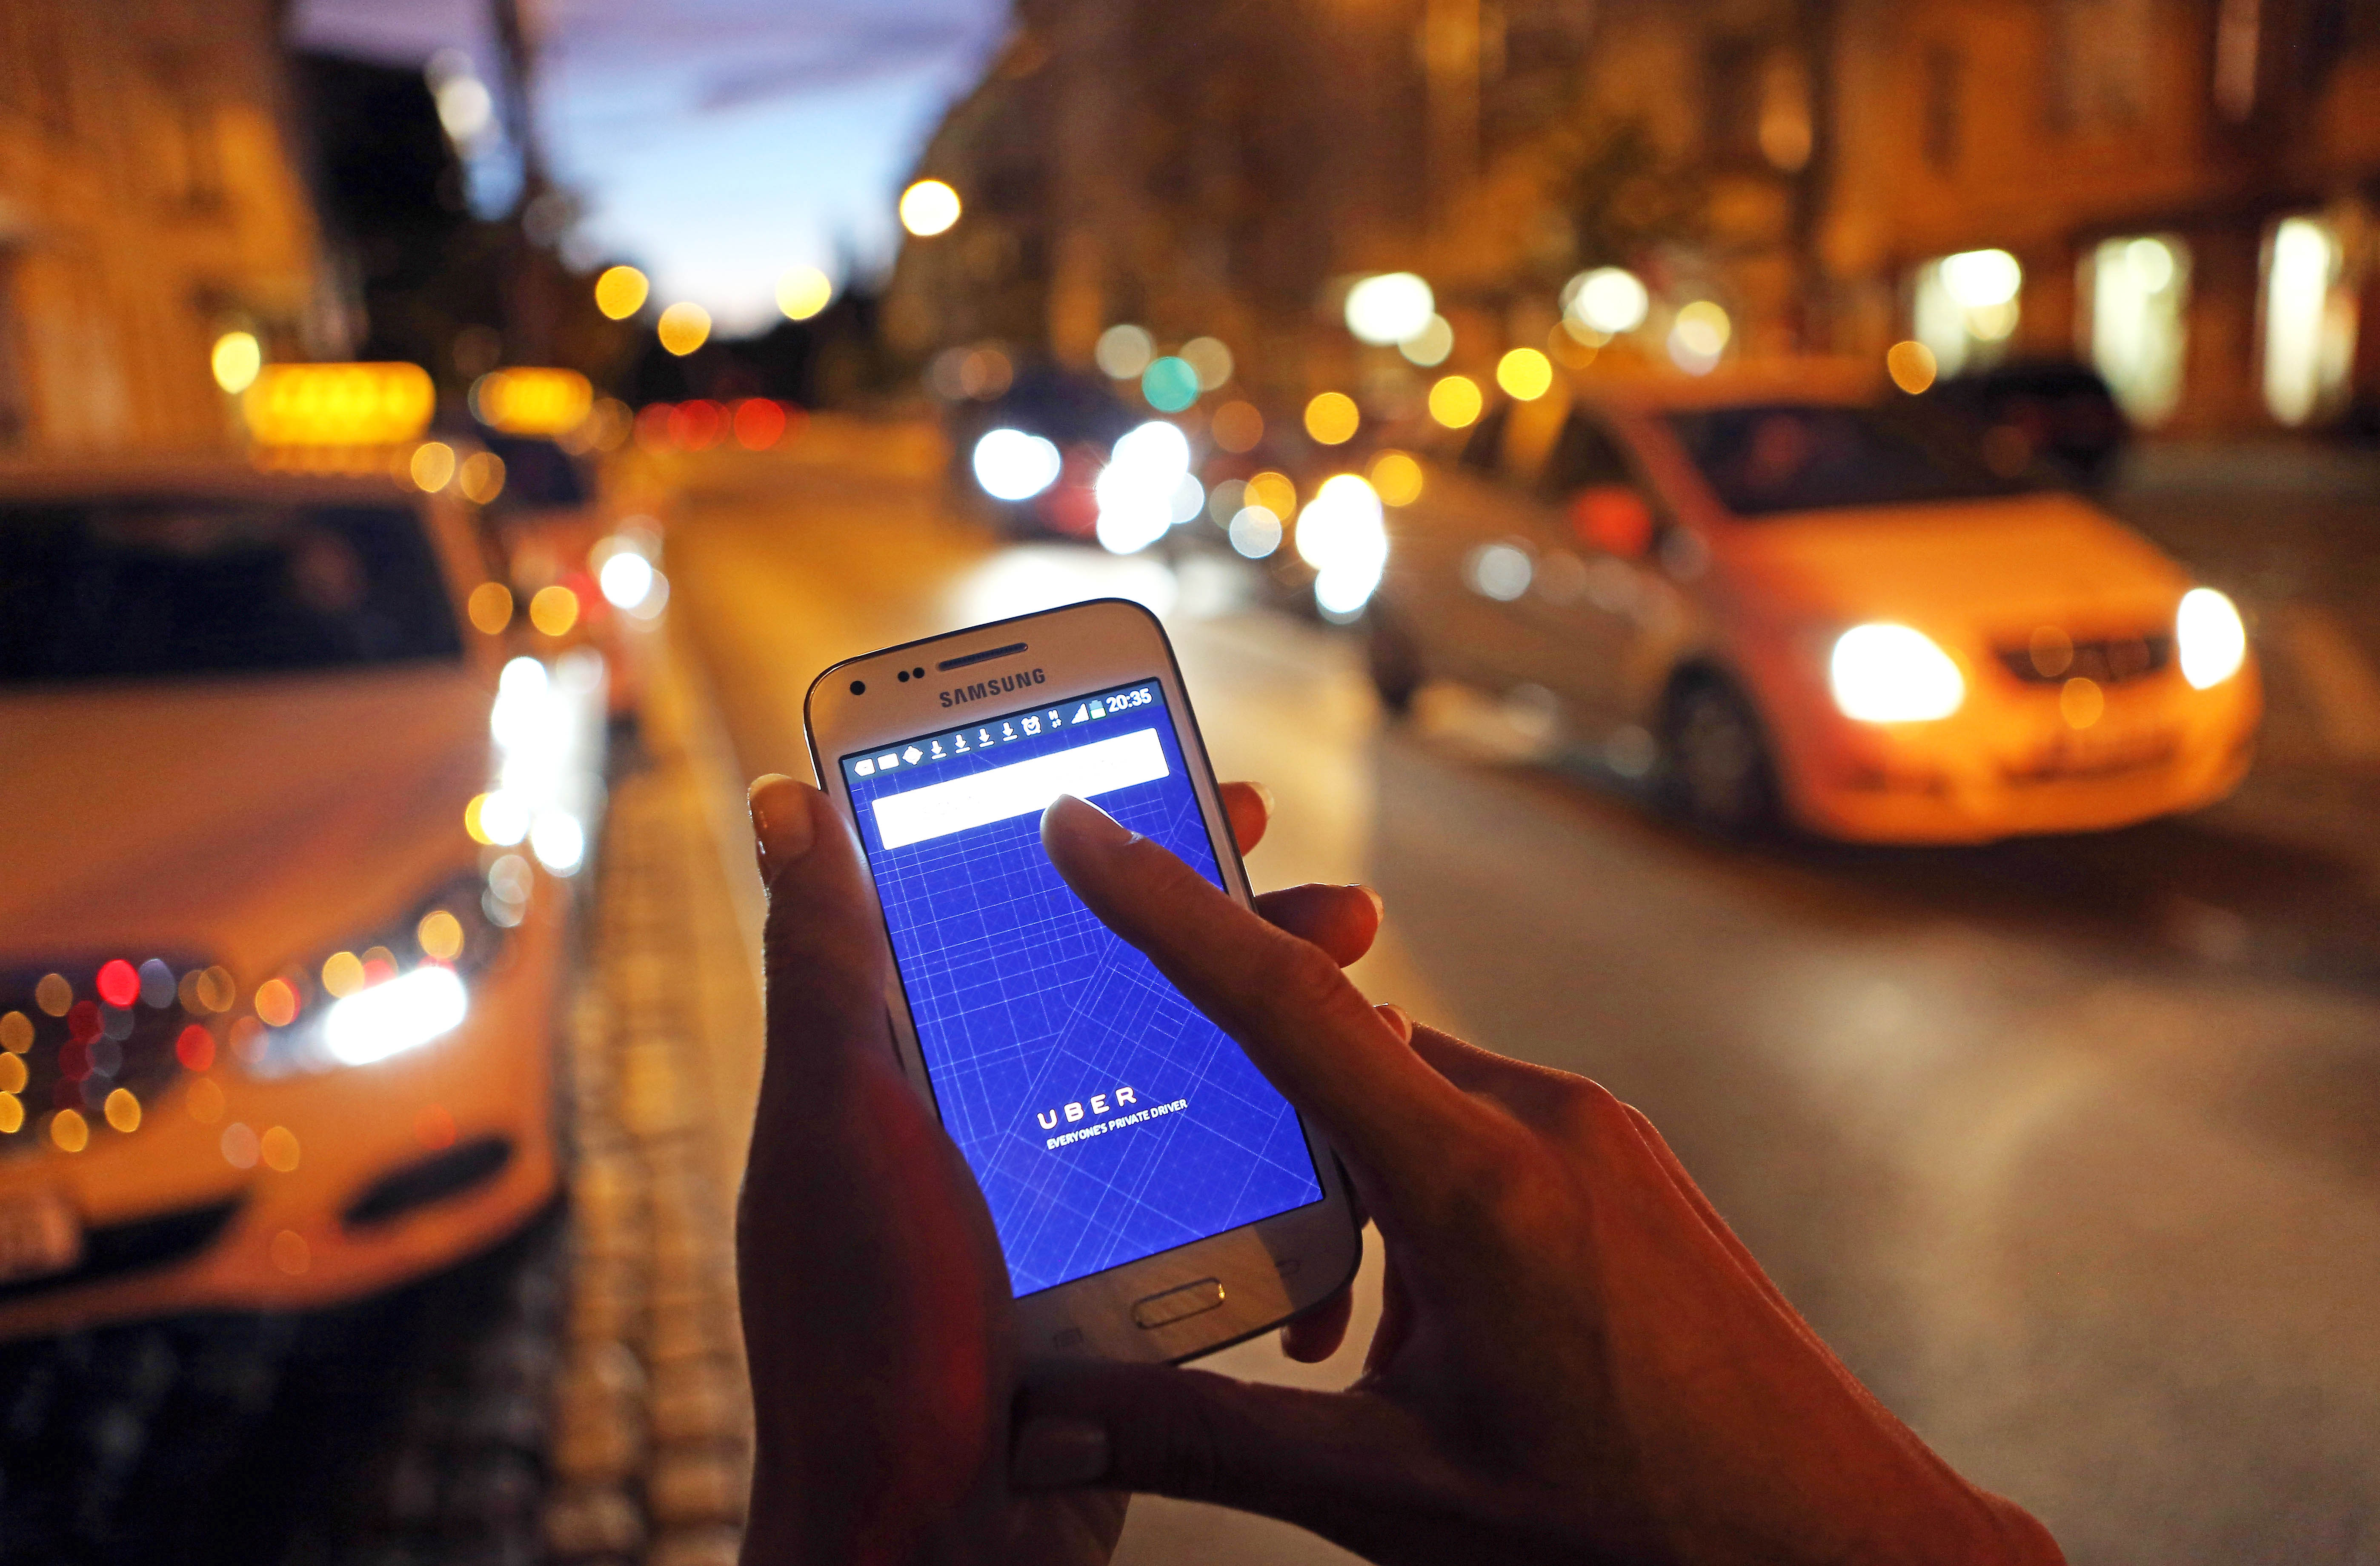 A woman uses the Uber app on an Samsung smartphone on Sept. 2, 2014 in Berlin.